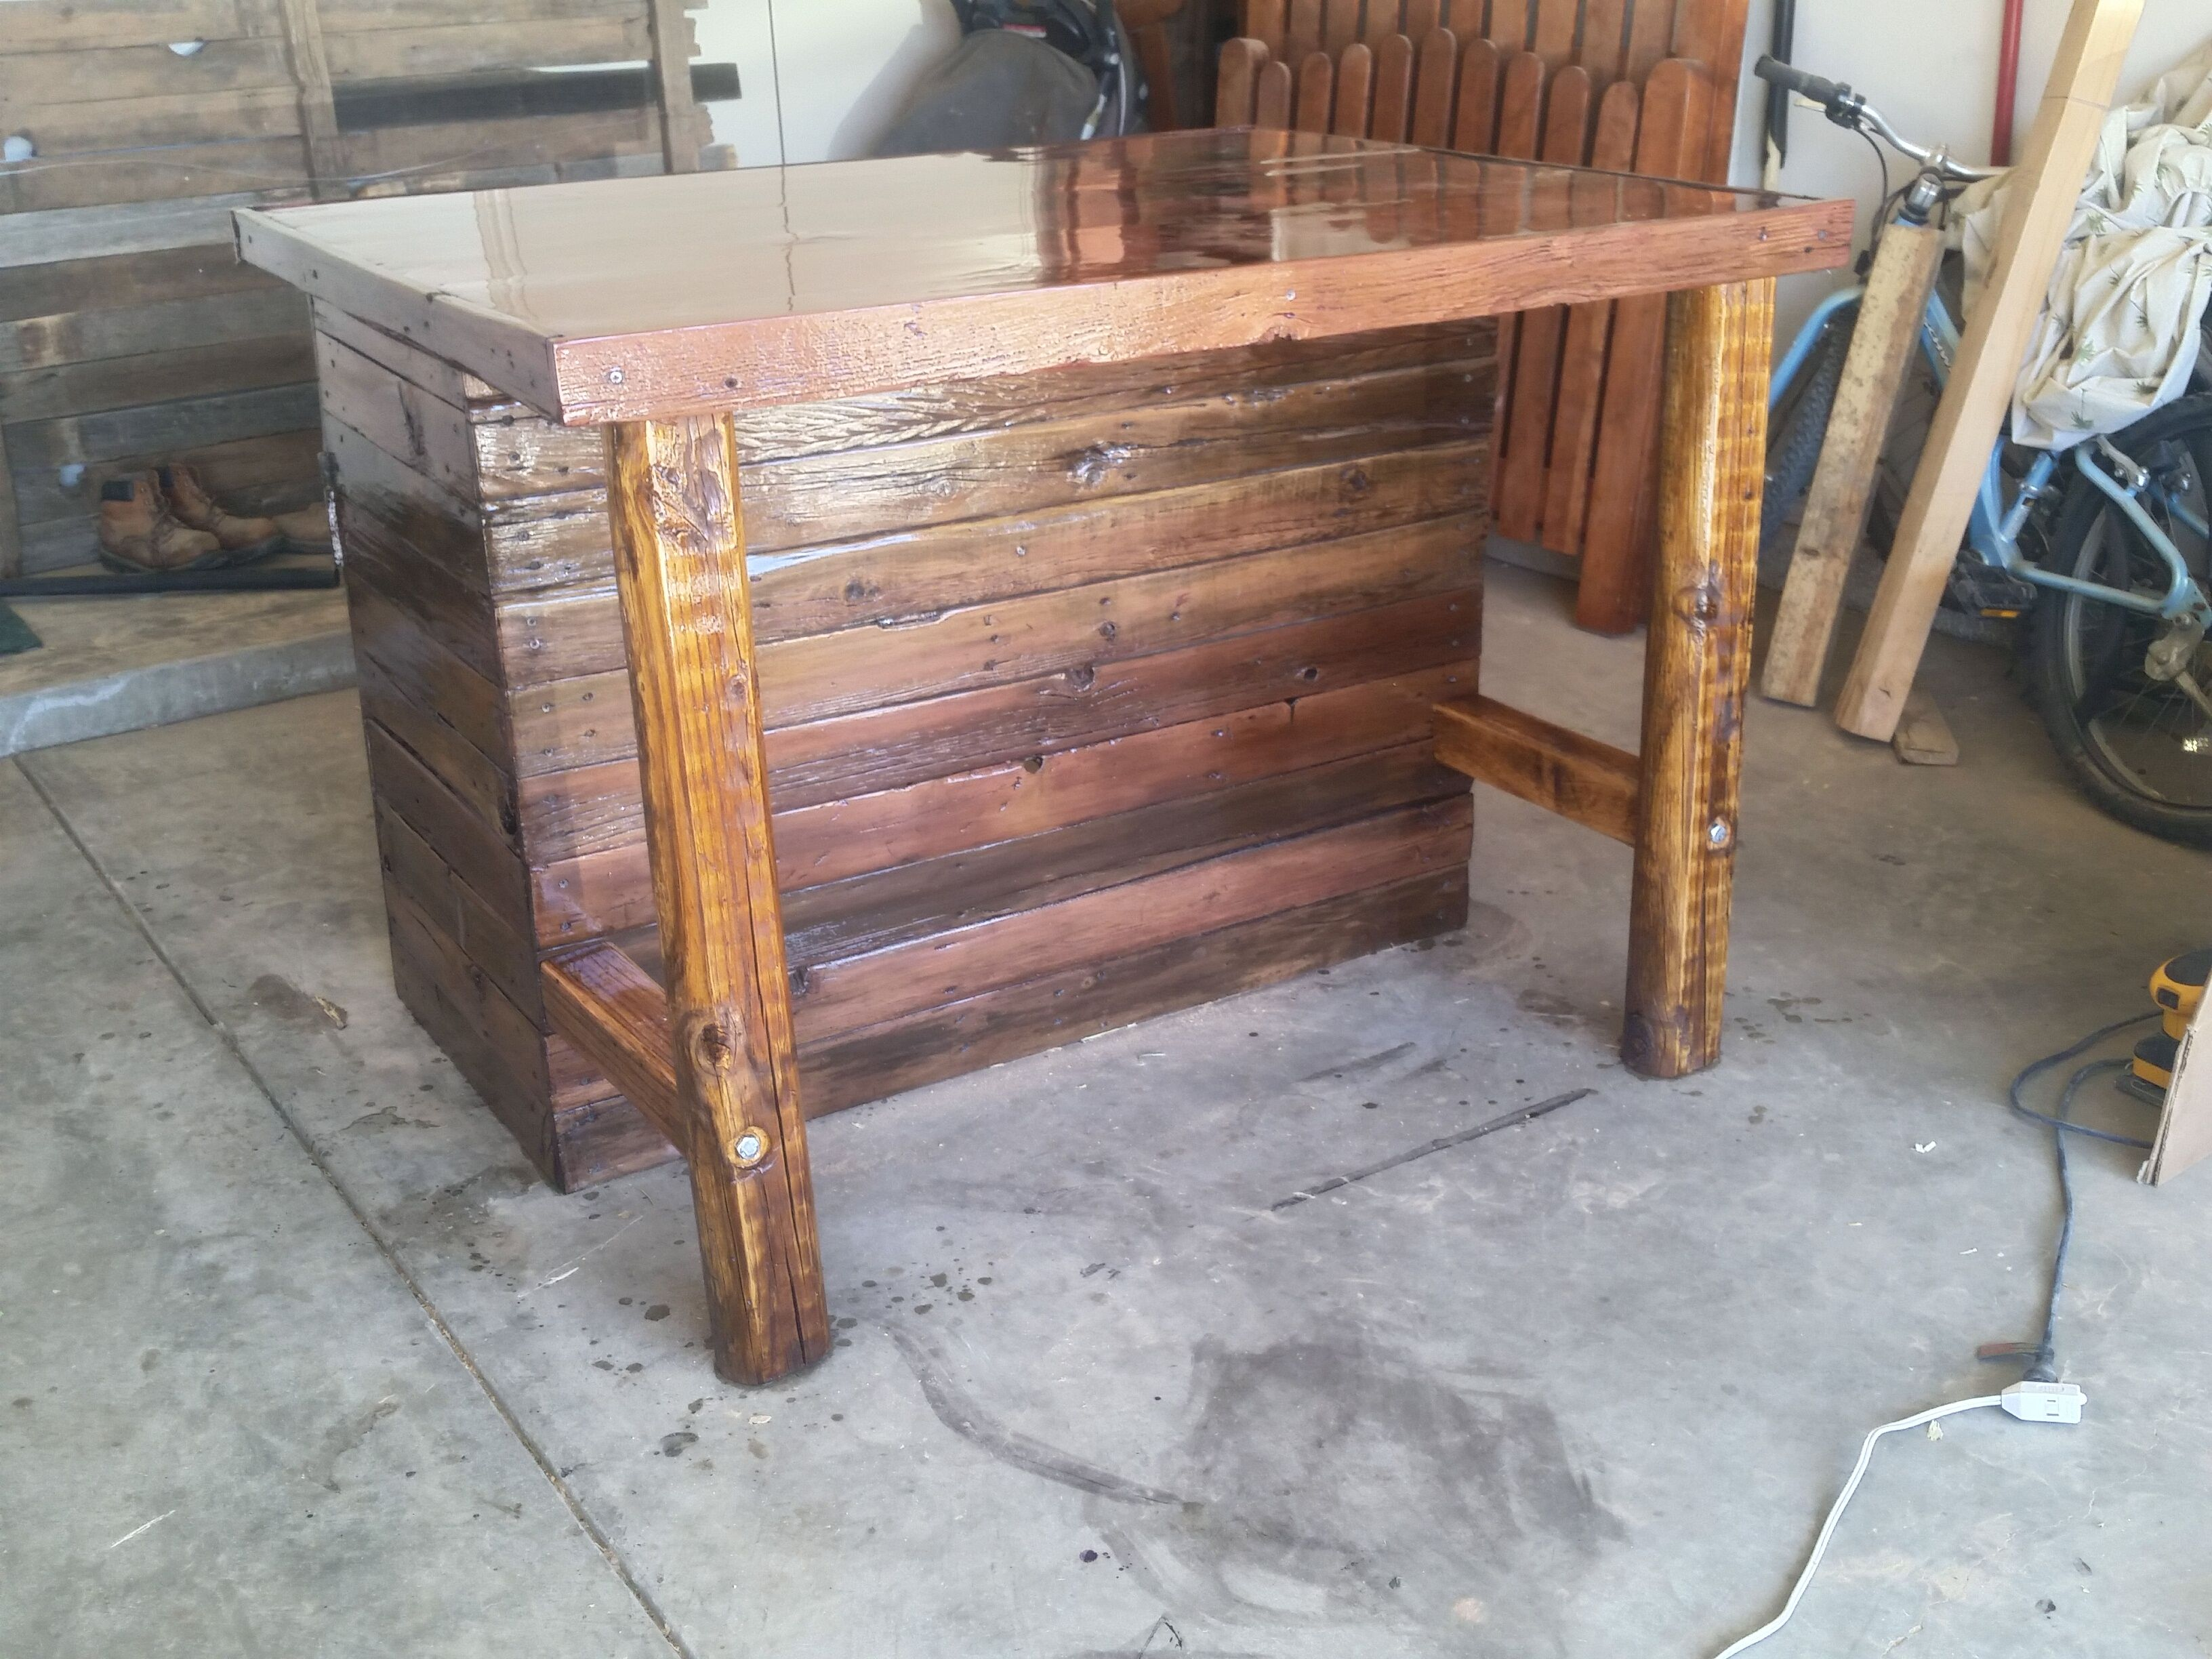 Custom Rustic Kitchen Islands Handmade Rustic Kitchen Island Or Outdoor Barcowboy Creation